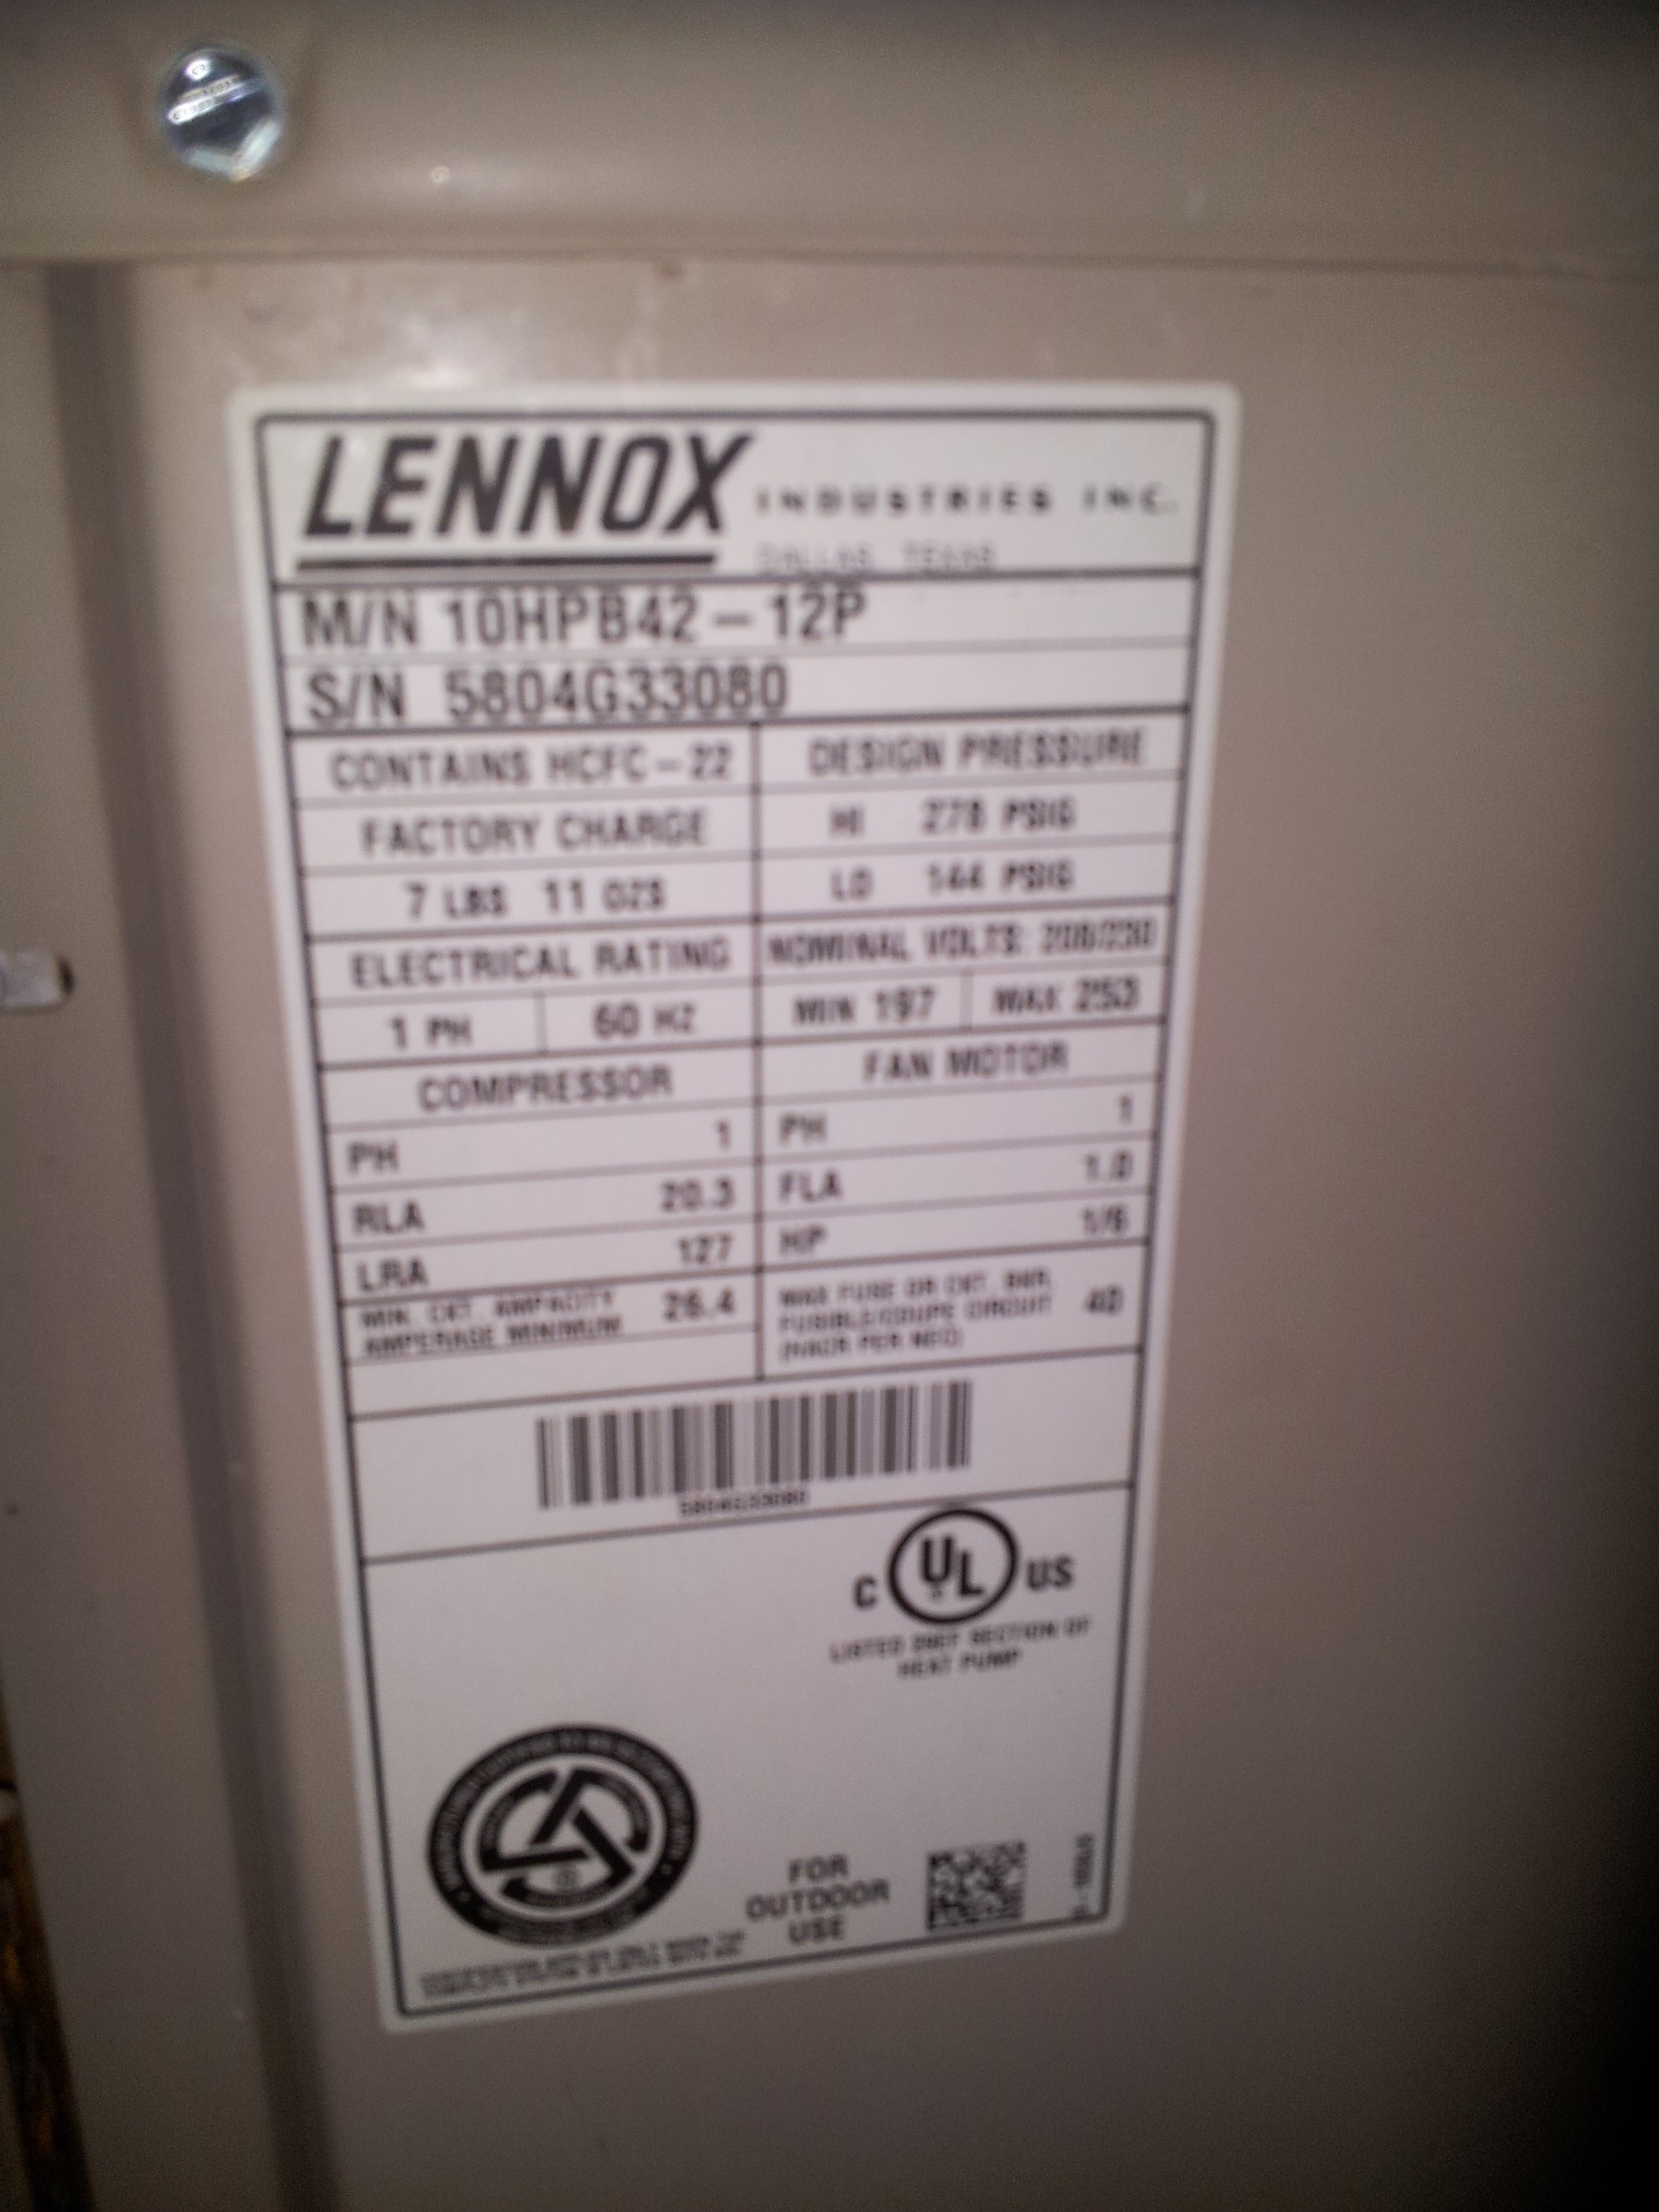 honeywell thermostat rth6350 wiring diagram what is the use of venn hi im installing a i am